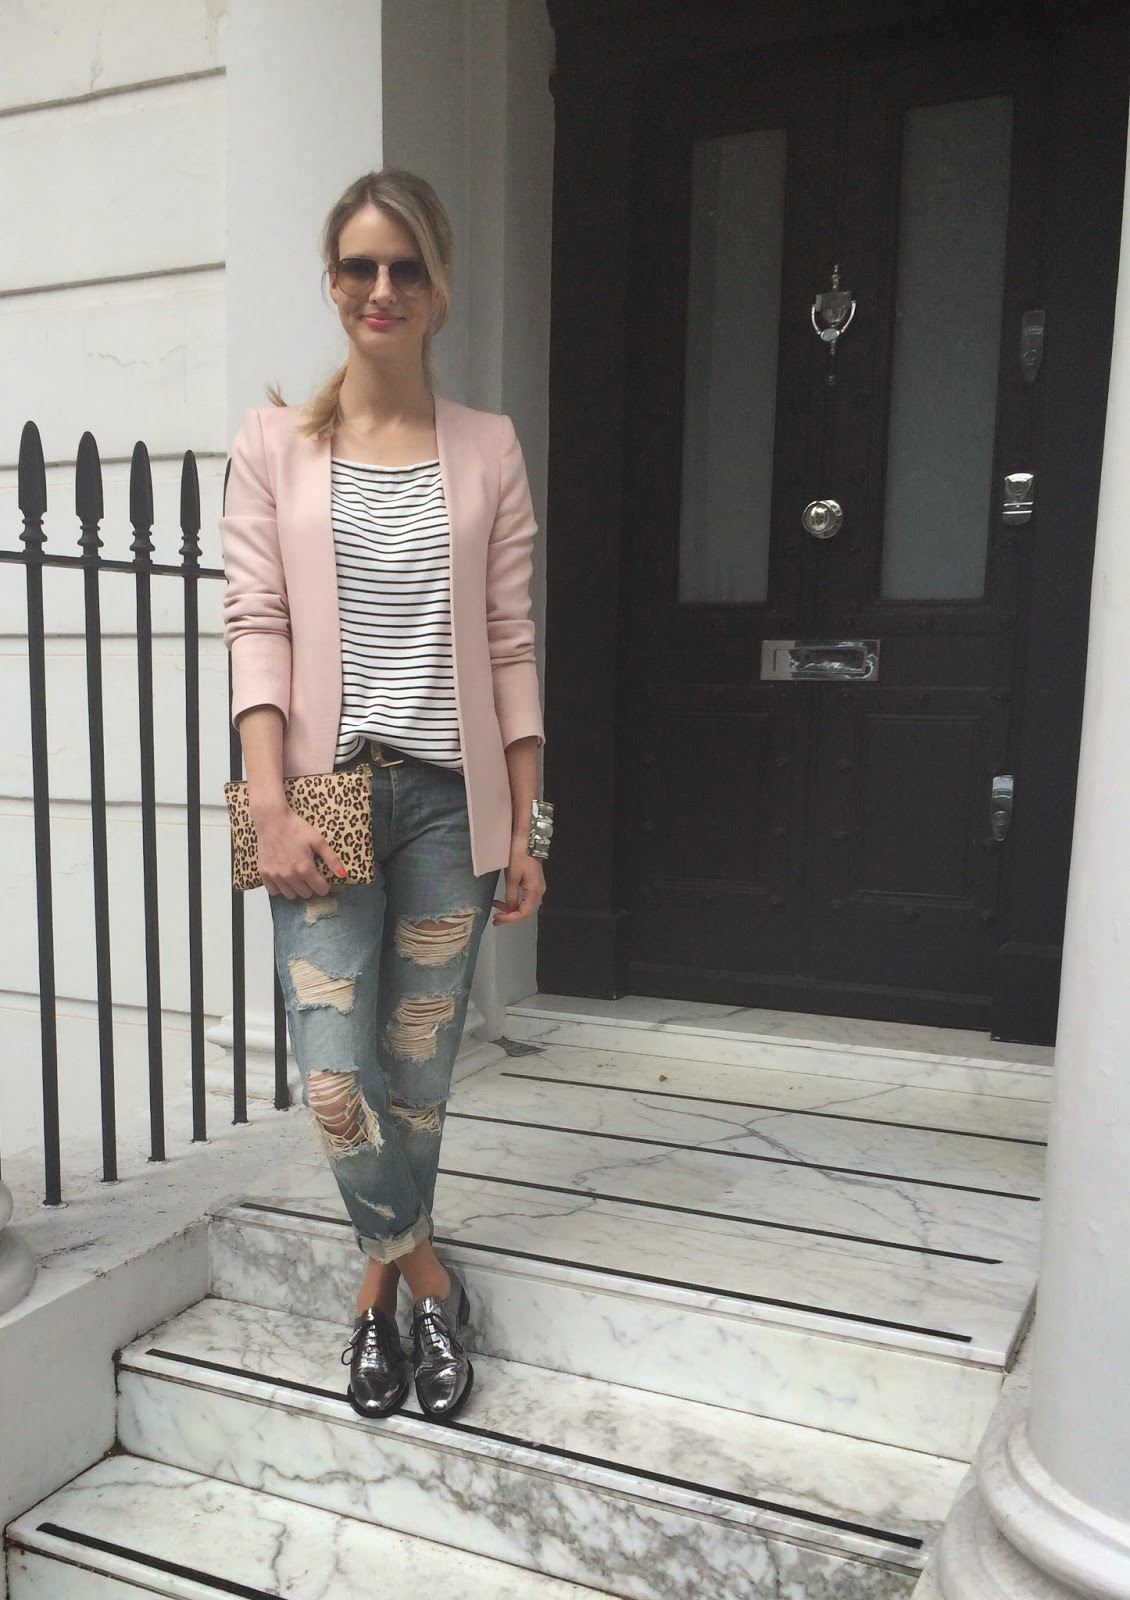 brogues, metallic brogues, silver brogues, ripped jeans and lace ups, zara pink blazer